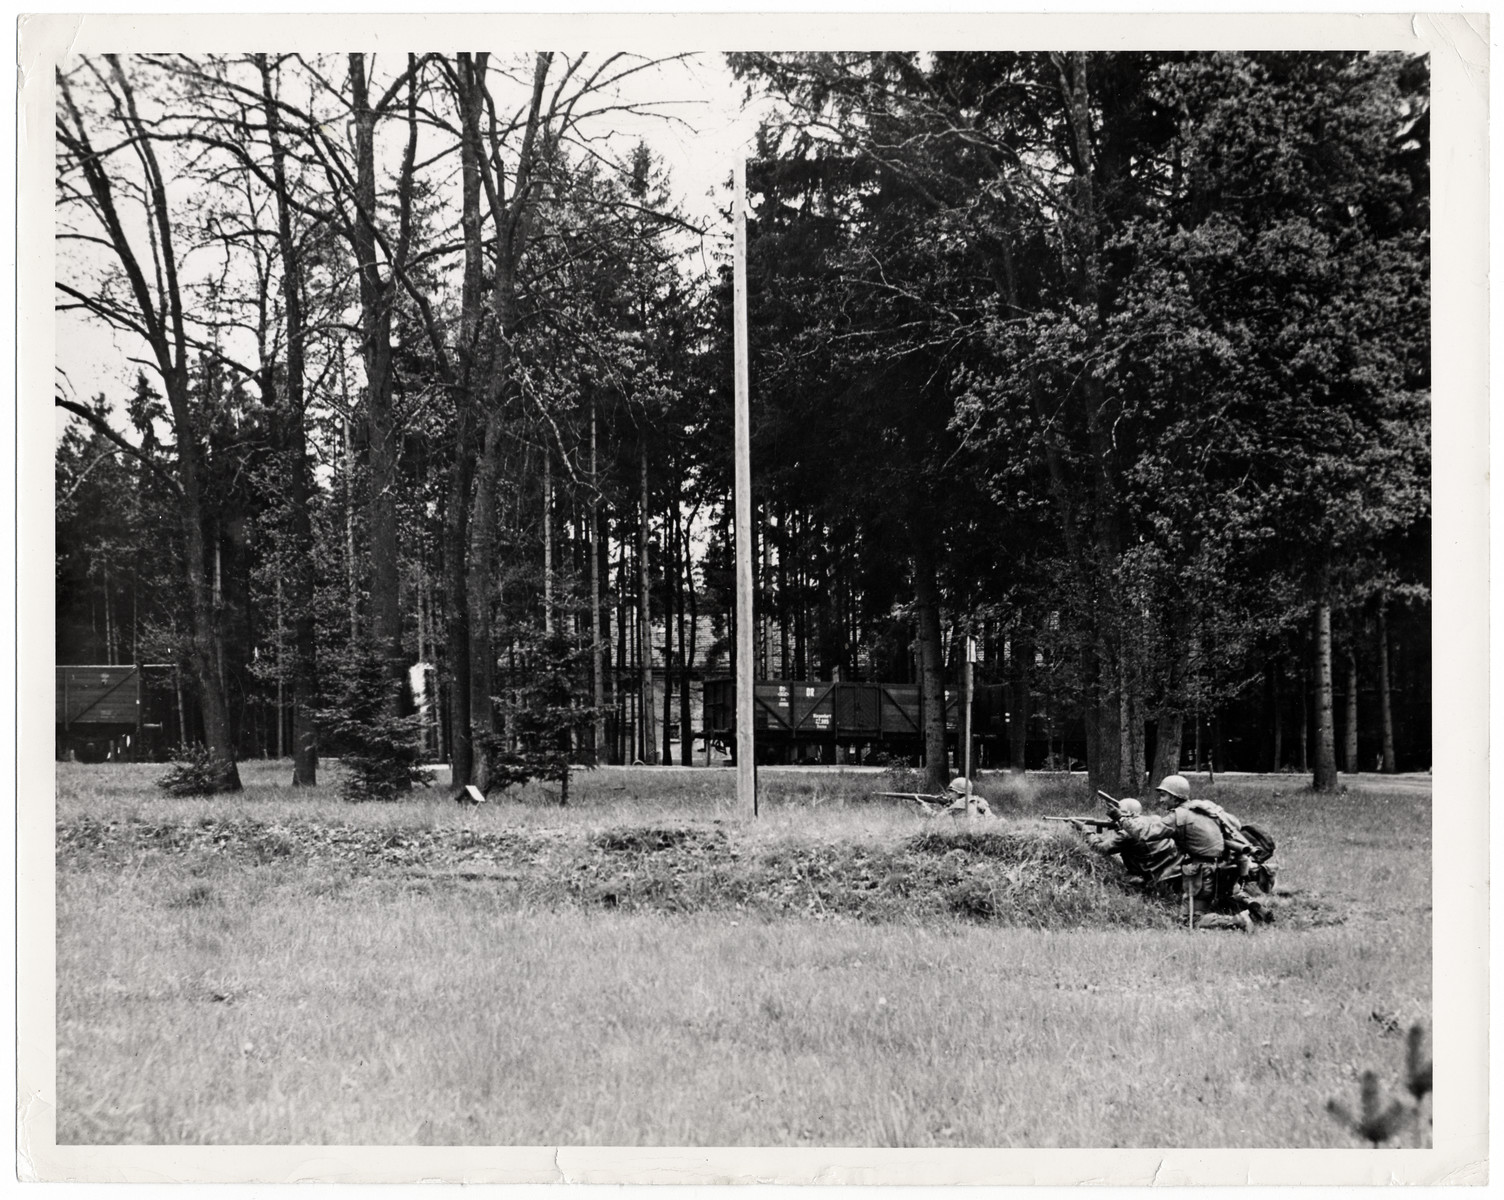 """Original Caption: """"Seventh U.S. Army tankmen use a small knoll in Dachau to fire at fleeing SS guards as they liberated the infamous torture camp.  Horrors worse than those found in the German concentrations camps of Buchenwald and Belsen were discovered in the stinking hell-hole of Dachau, captured by troops pf the 42nd and 45th Infantry Divions of the Seventh U.S. Army April 30, 1945. More than 32,000 prisoners were liberated, among them some Englishmen, Canadians and Americans. The camp was formally surrendered by an SS Lieutenant carrying a white flag, accompanied by a Swiss Red Cross official, but SS troops opened fire as American troops approached the entrance. The Germans were shot down. Three prisoners were electrocuted when they tried to burst throught the electrified barrier to welcome the Americans. SS guards opened fire on other prisoners who went wild with joy and rushed to meet the liberating troops.  Prisoners with access to records said 9,000 people died of hunger, disease or shooting within the past three months at Dachau. Four thousand more perished during cold winter months. When Americans entered the camp, they found 50 open railway cars standing on a siding, apparently full of oiled, dirty clothing but actually found hundreds of corpses piled on top of each other. They also found a row of kennels where fierce dogs were kept to set after escaping men. They discovered gas extermination chambers, incinerators full of naked bodies, bodies marked for dissection and bodies of several small children.""""    This Photo Shows: """""""""""